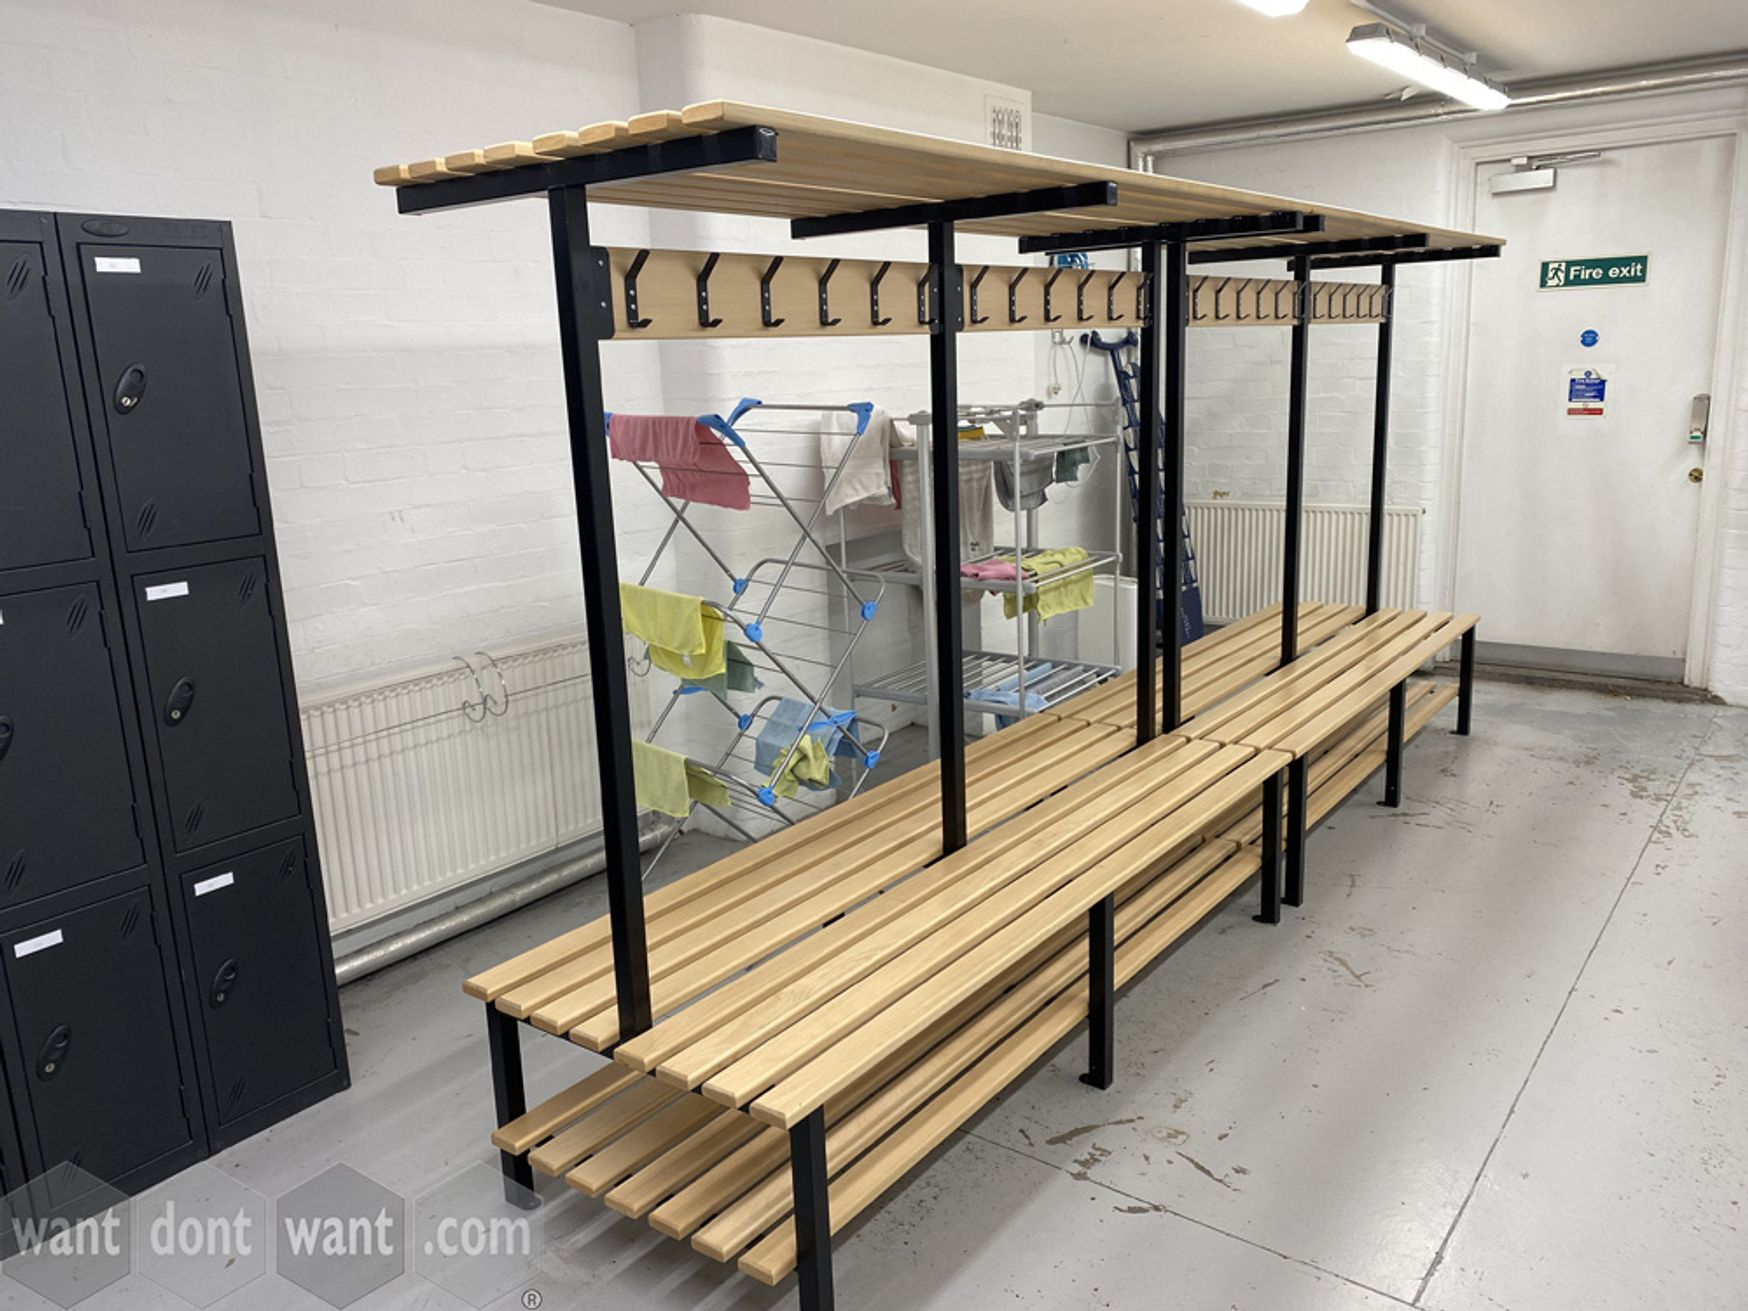 Used changing room benches with bottom shoe shelf, coat hooks and top shelf